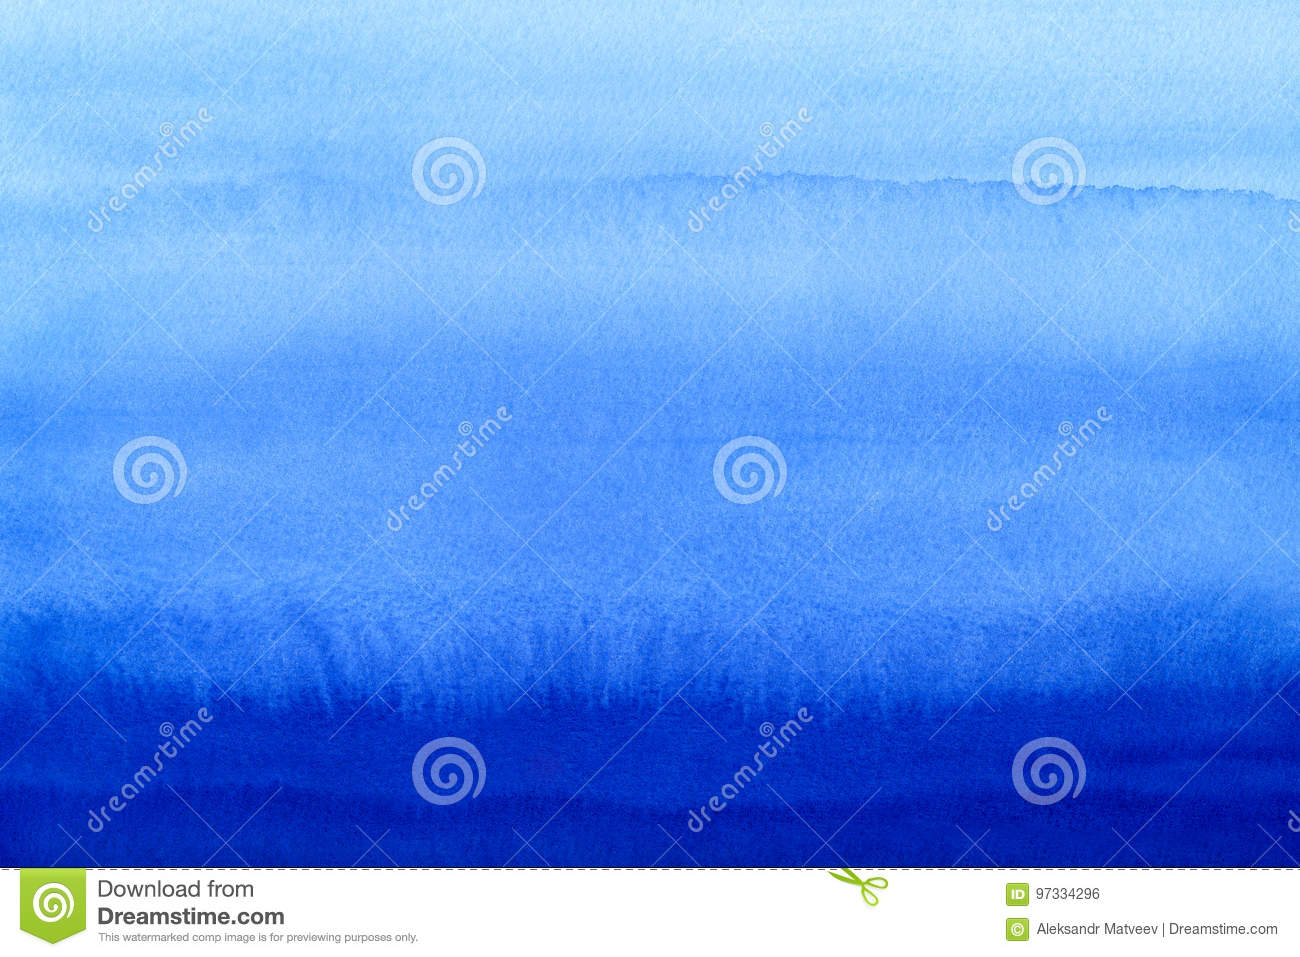 Marine or navy blue watercolor gradient fill background. Watercolour stains. Abstract painted template with paper texture. Blue se